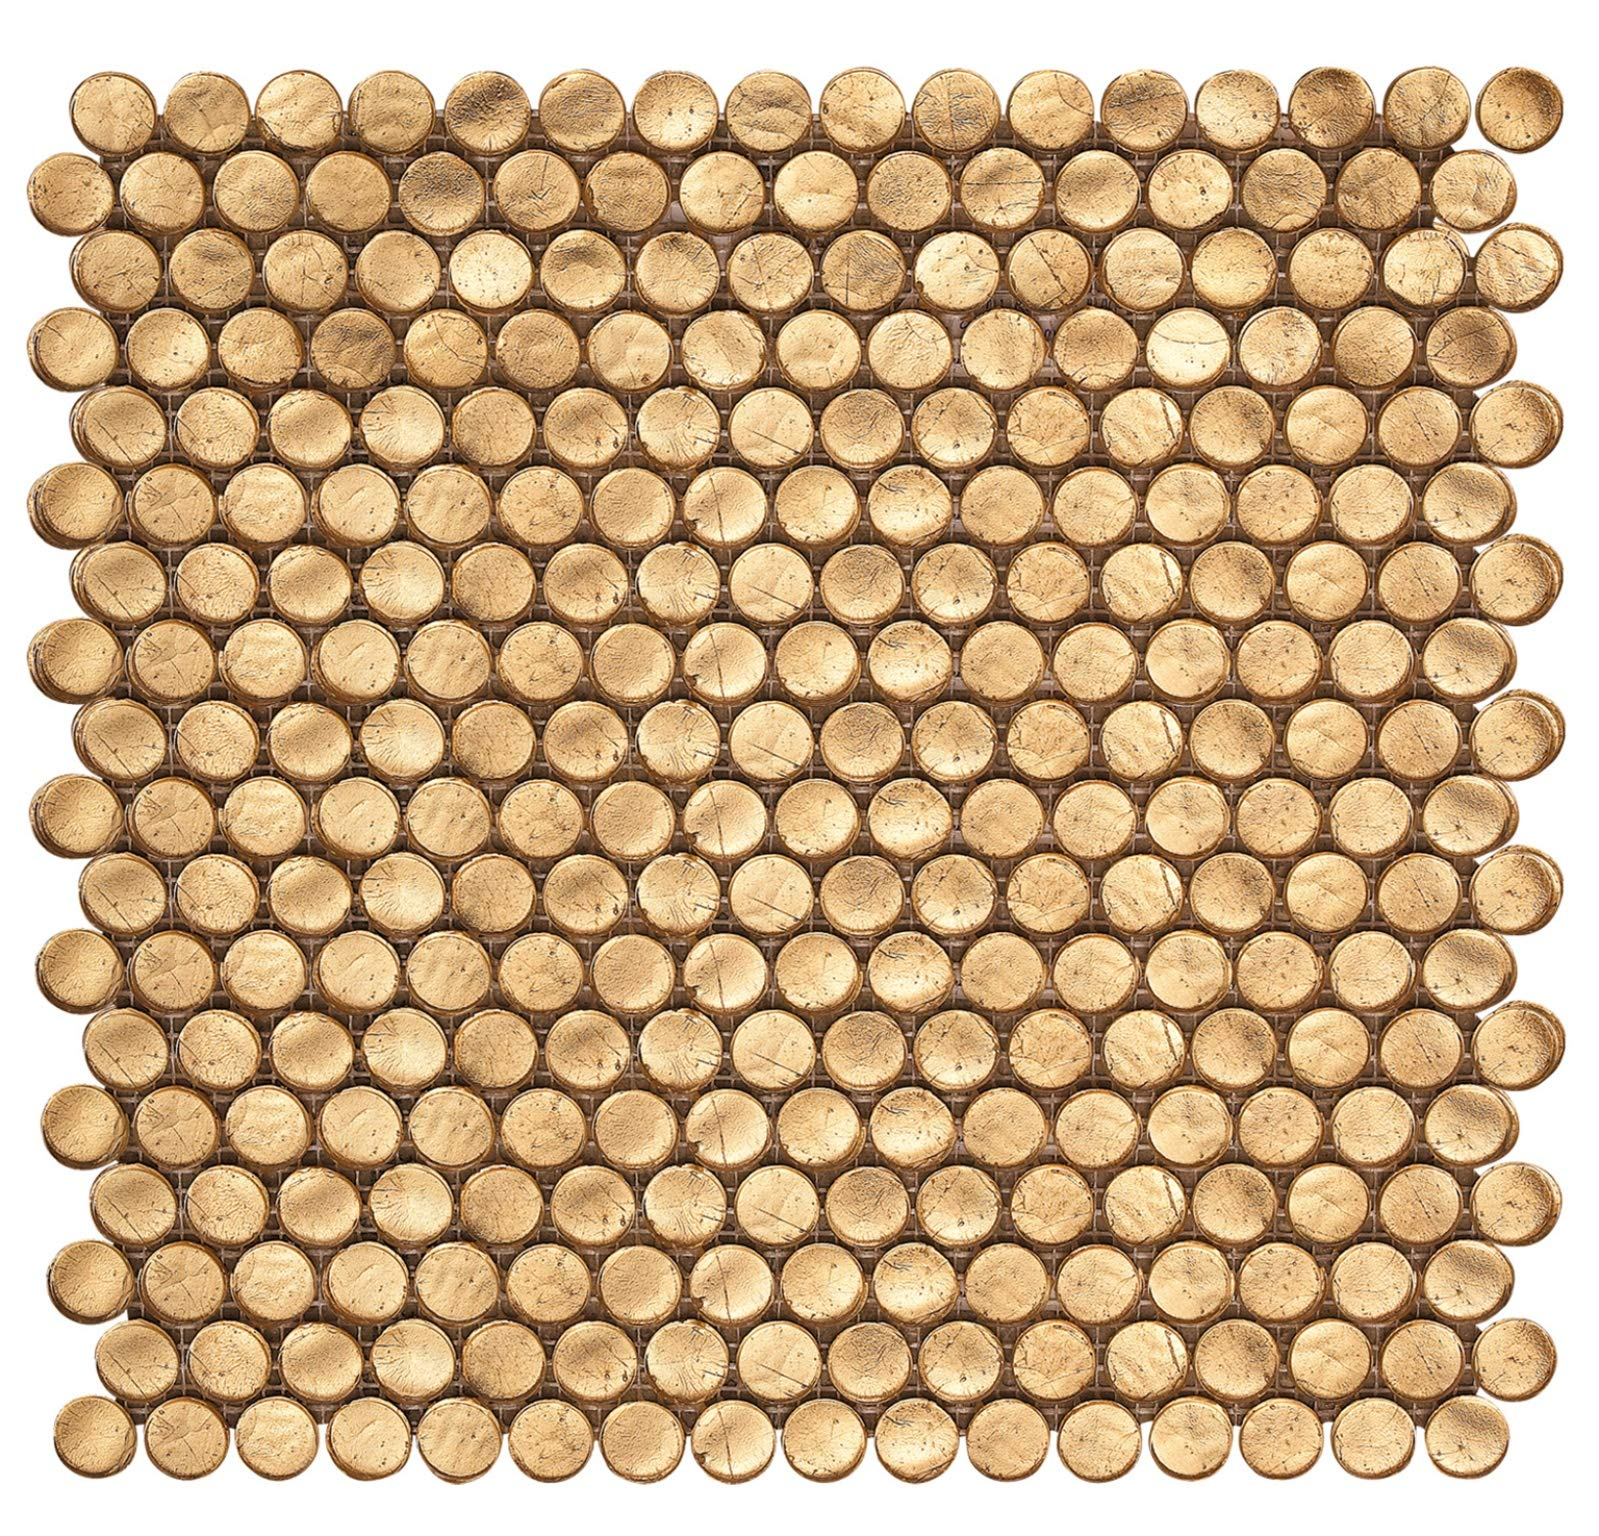 Gold Metallic Shimmer Penny Round Glass Mosaic by Squarefeet Depot